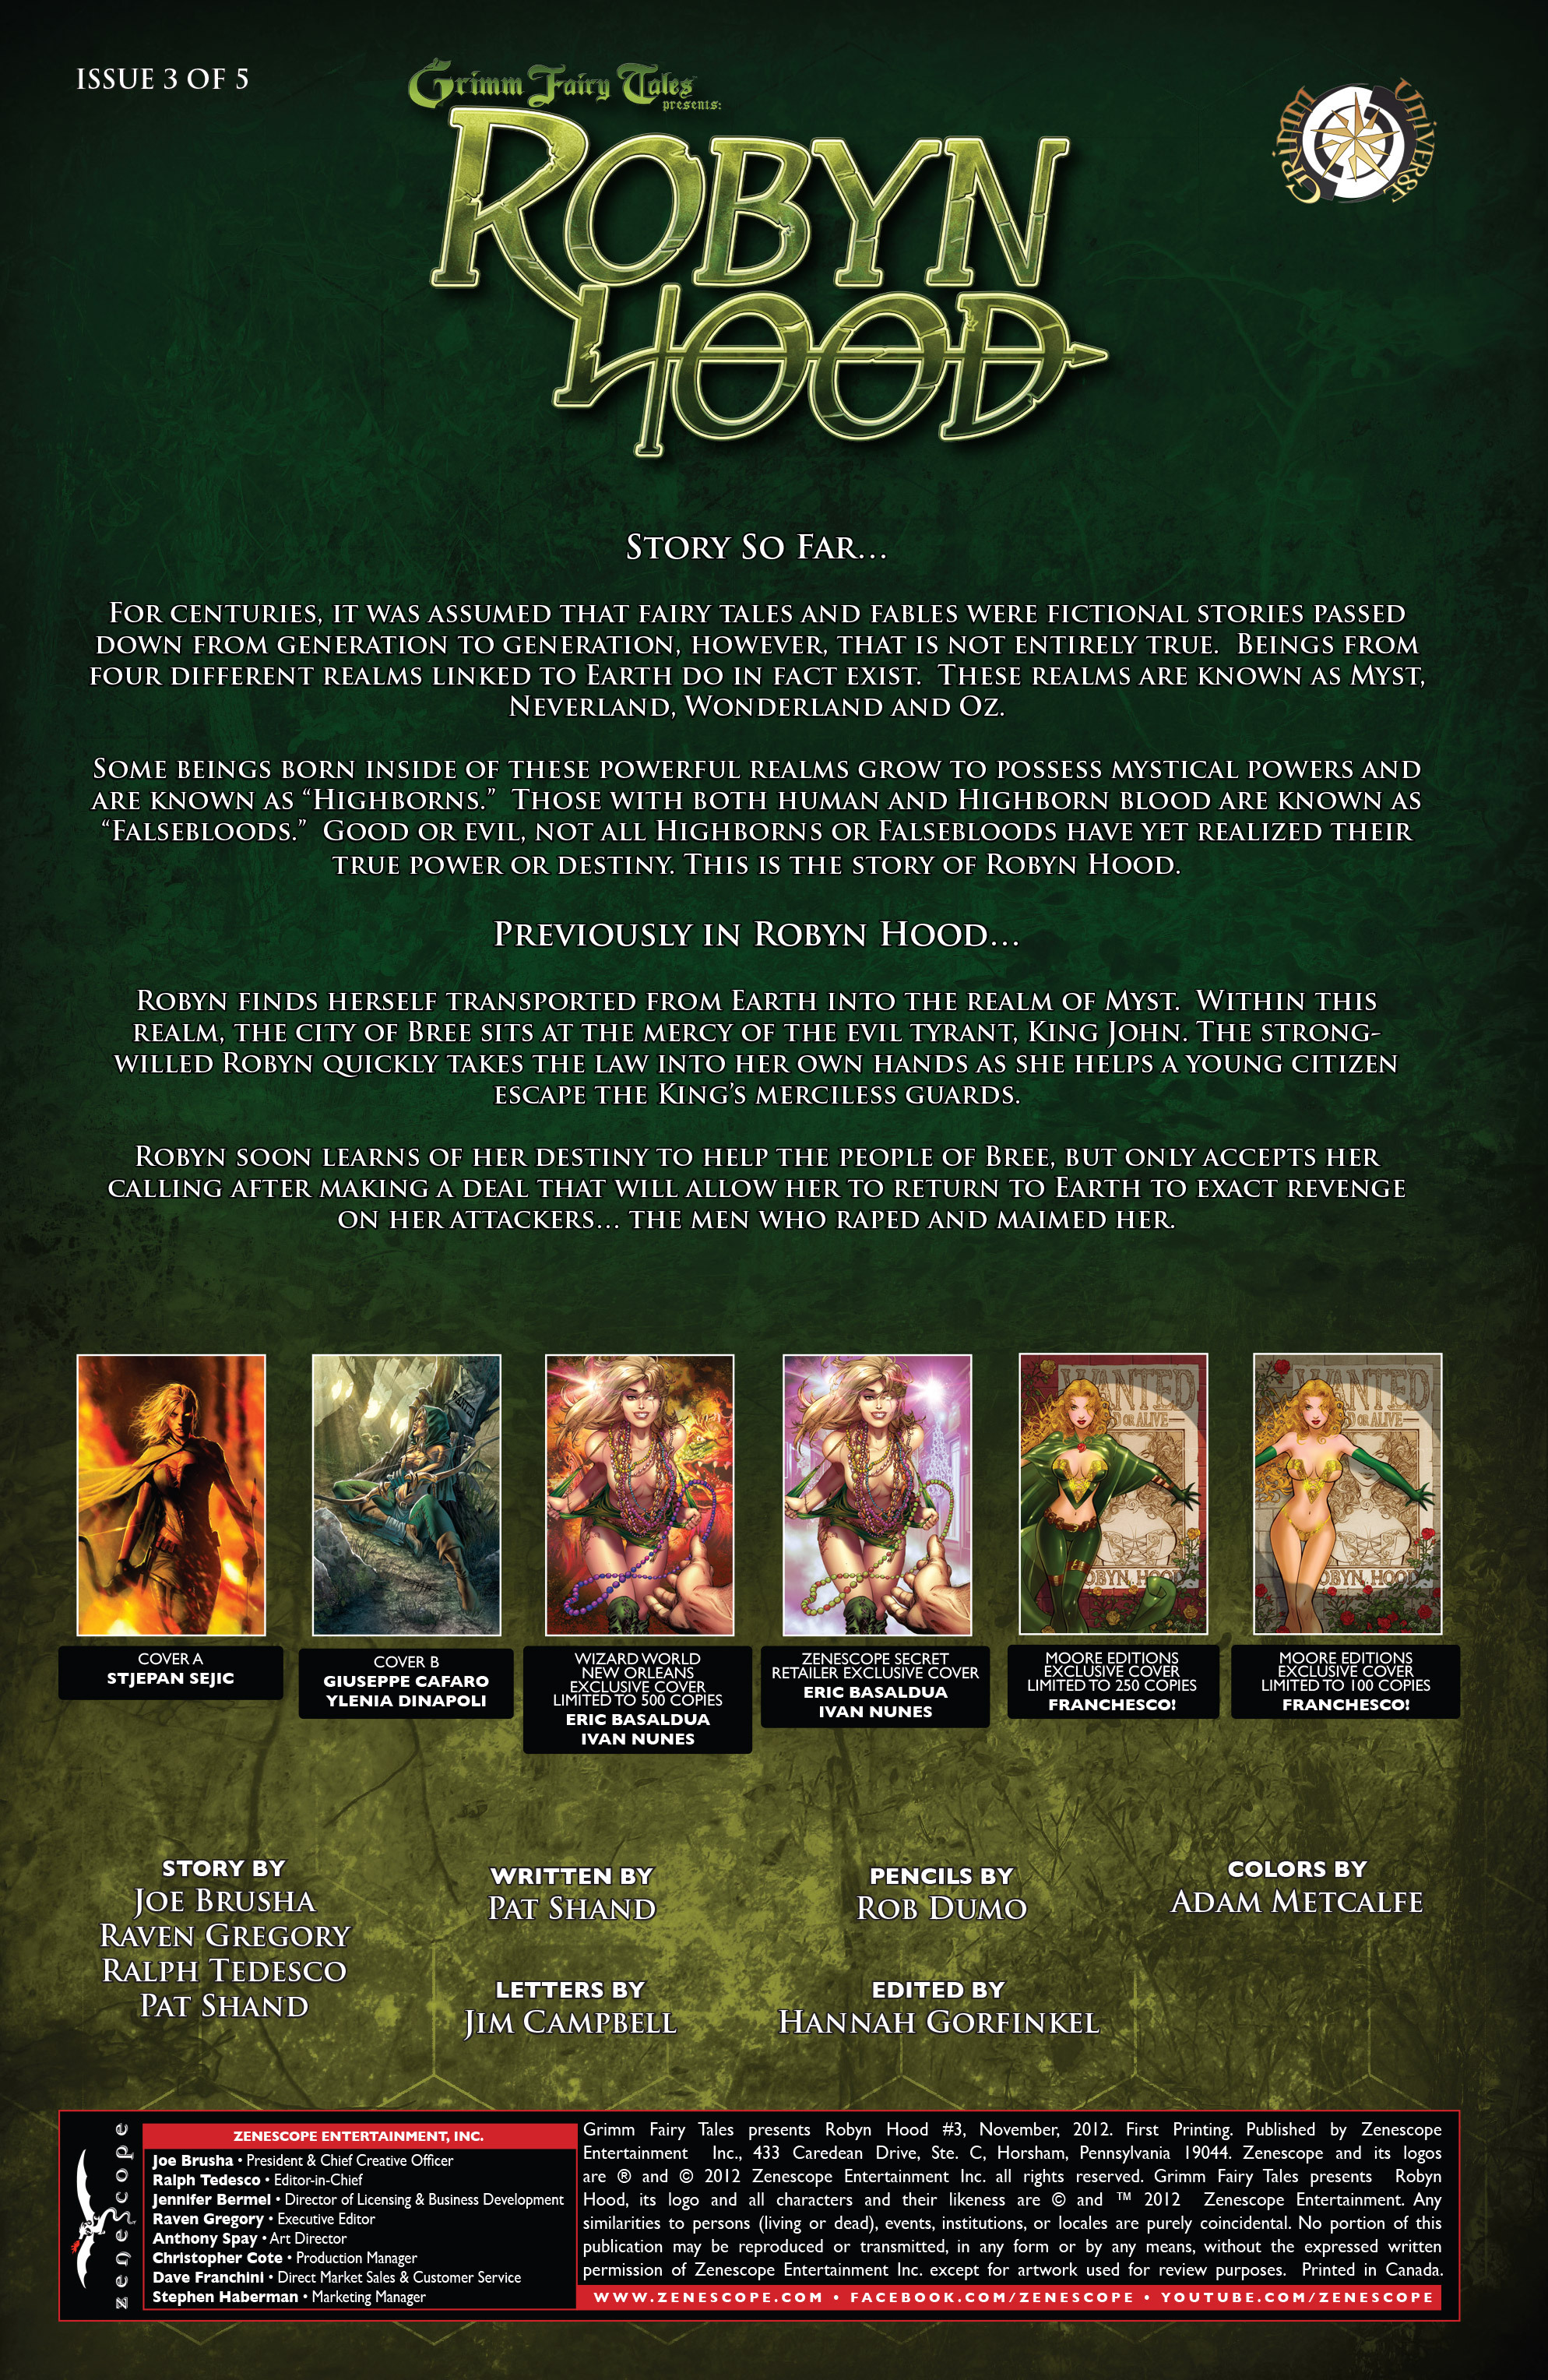 Read online Grimm Fairy Tales presents Robyn Hood (2012) comic -  Issue #3 - 2